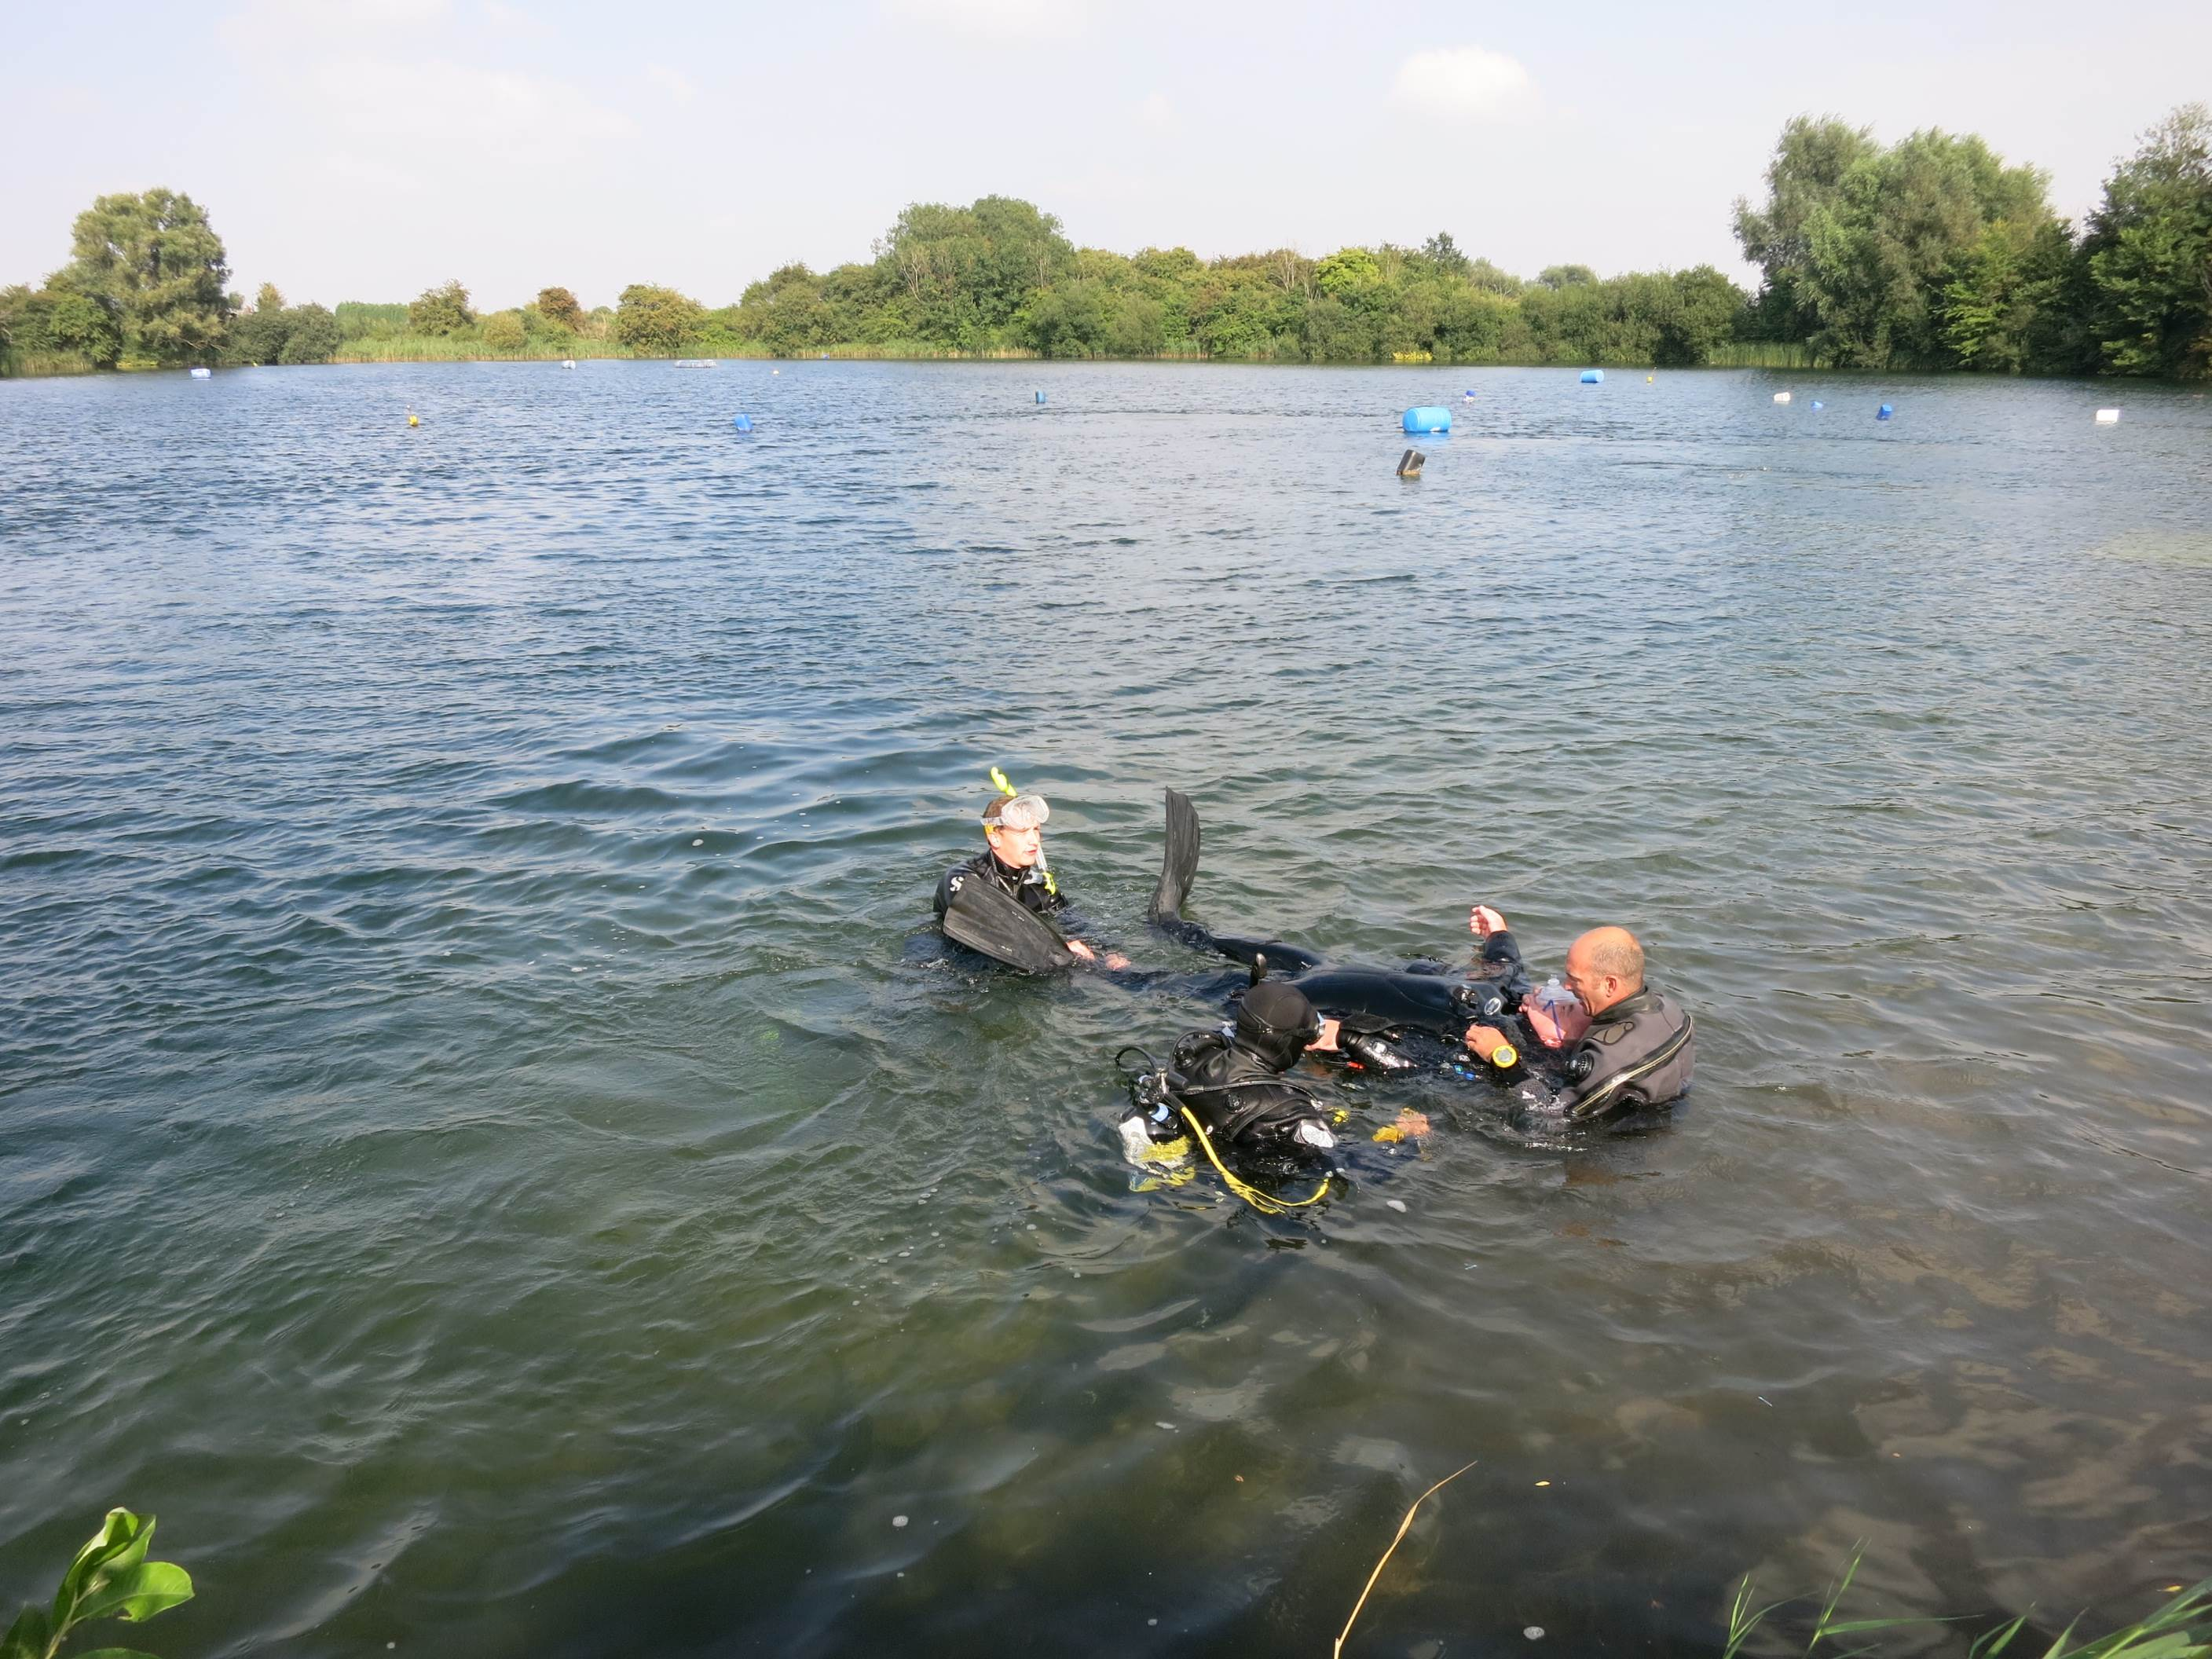 Beginner level PADI Open Water Scuba course in Essex